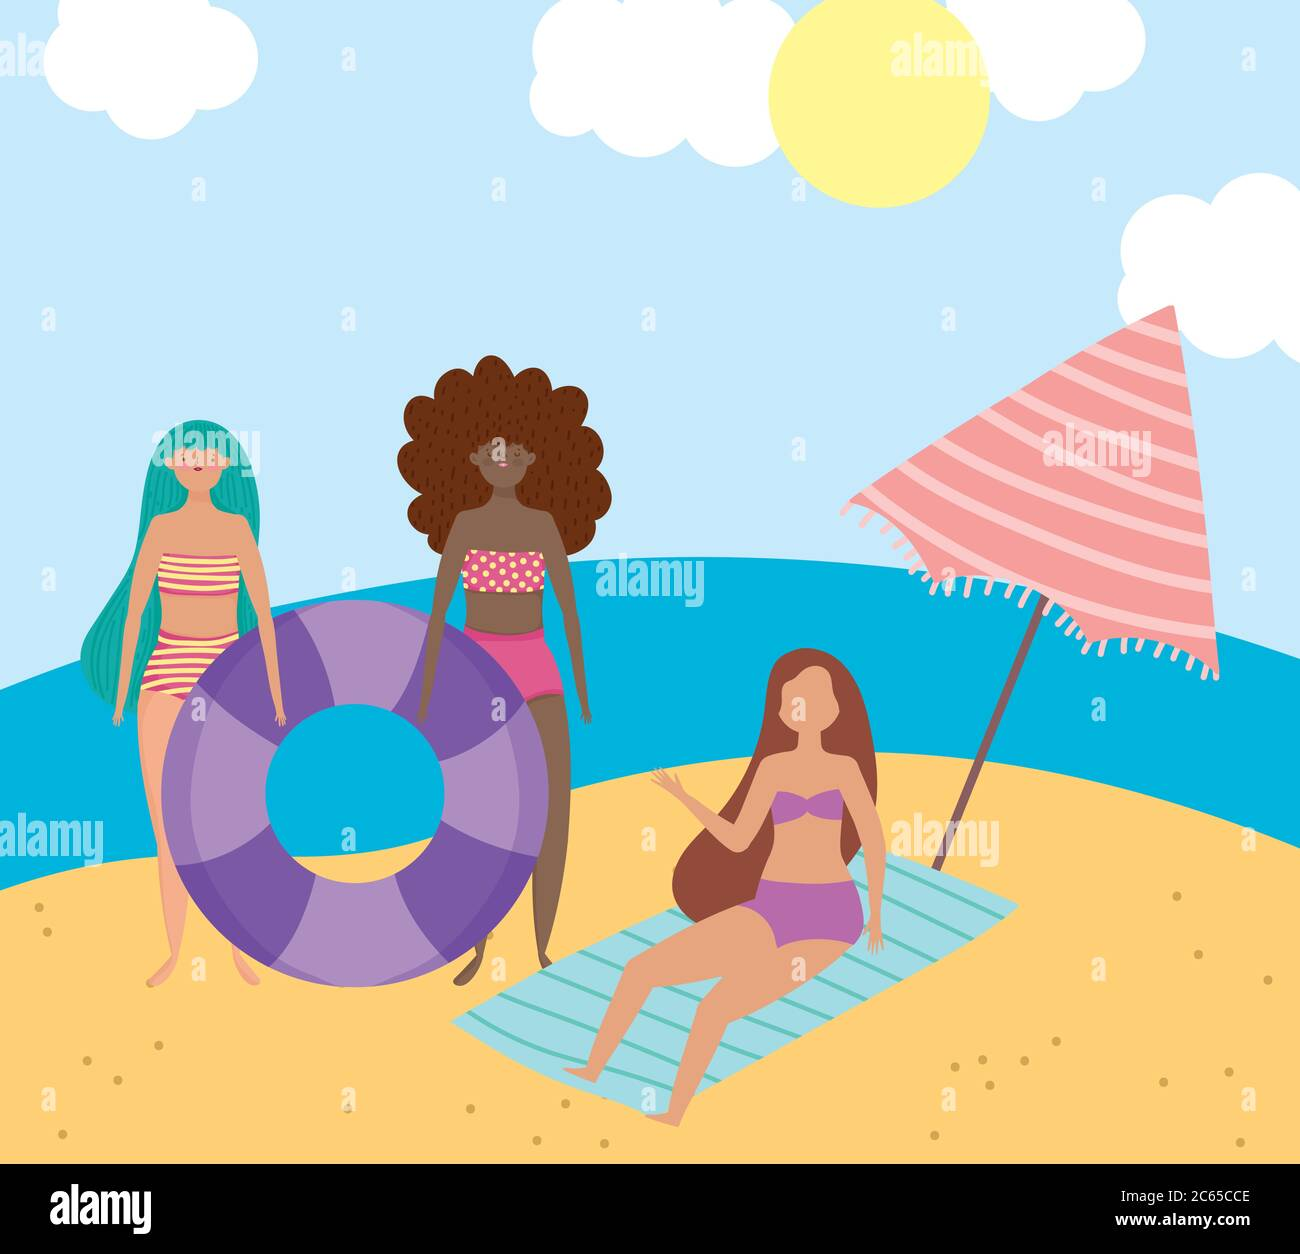 summer people activities, group girls with float umbrella and towel in the beach, seashore relaxing and performing leisure outdoor vector illustration Stock Vector